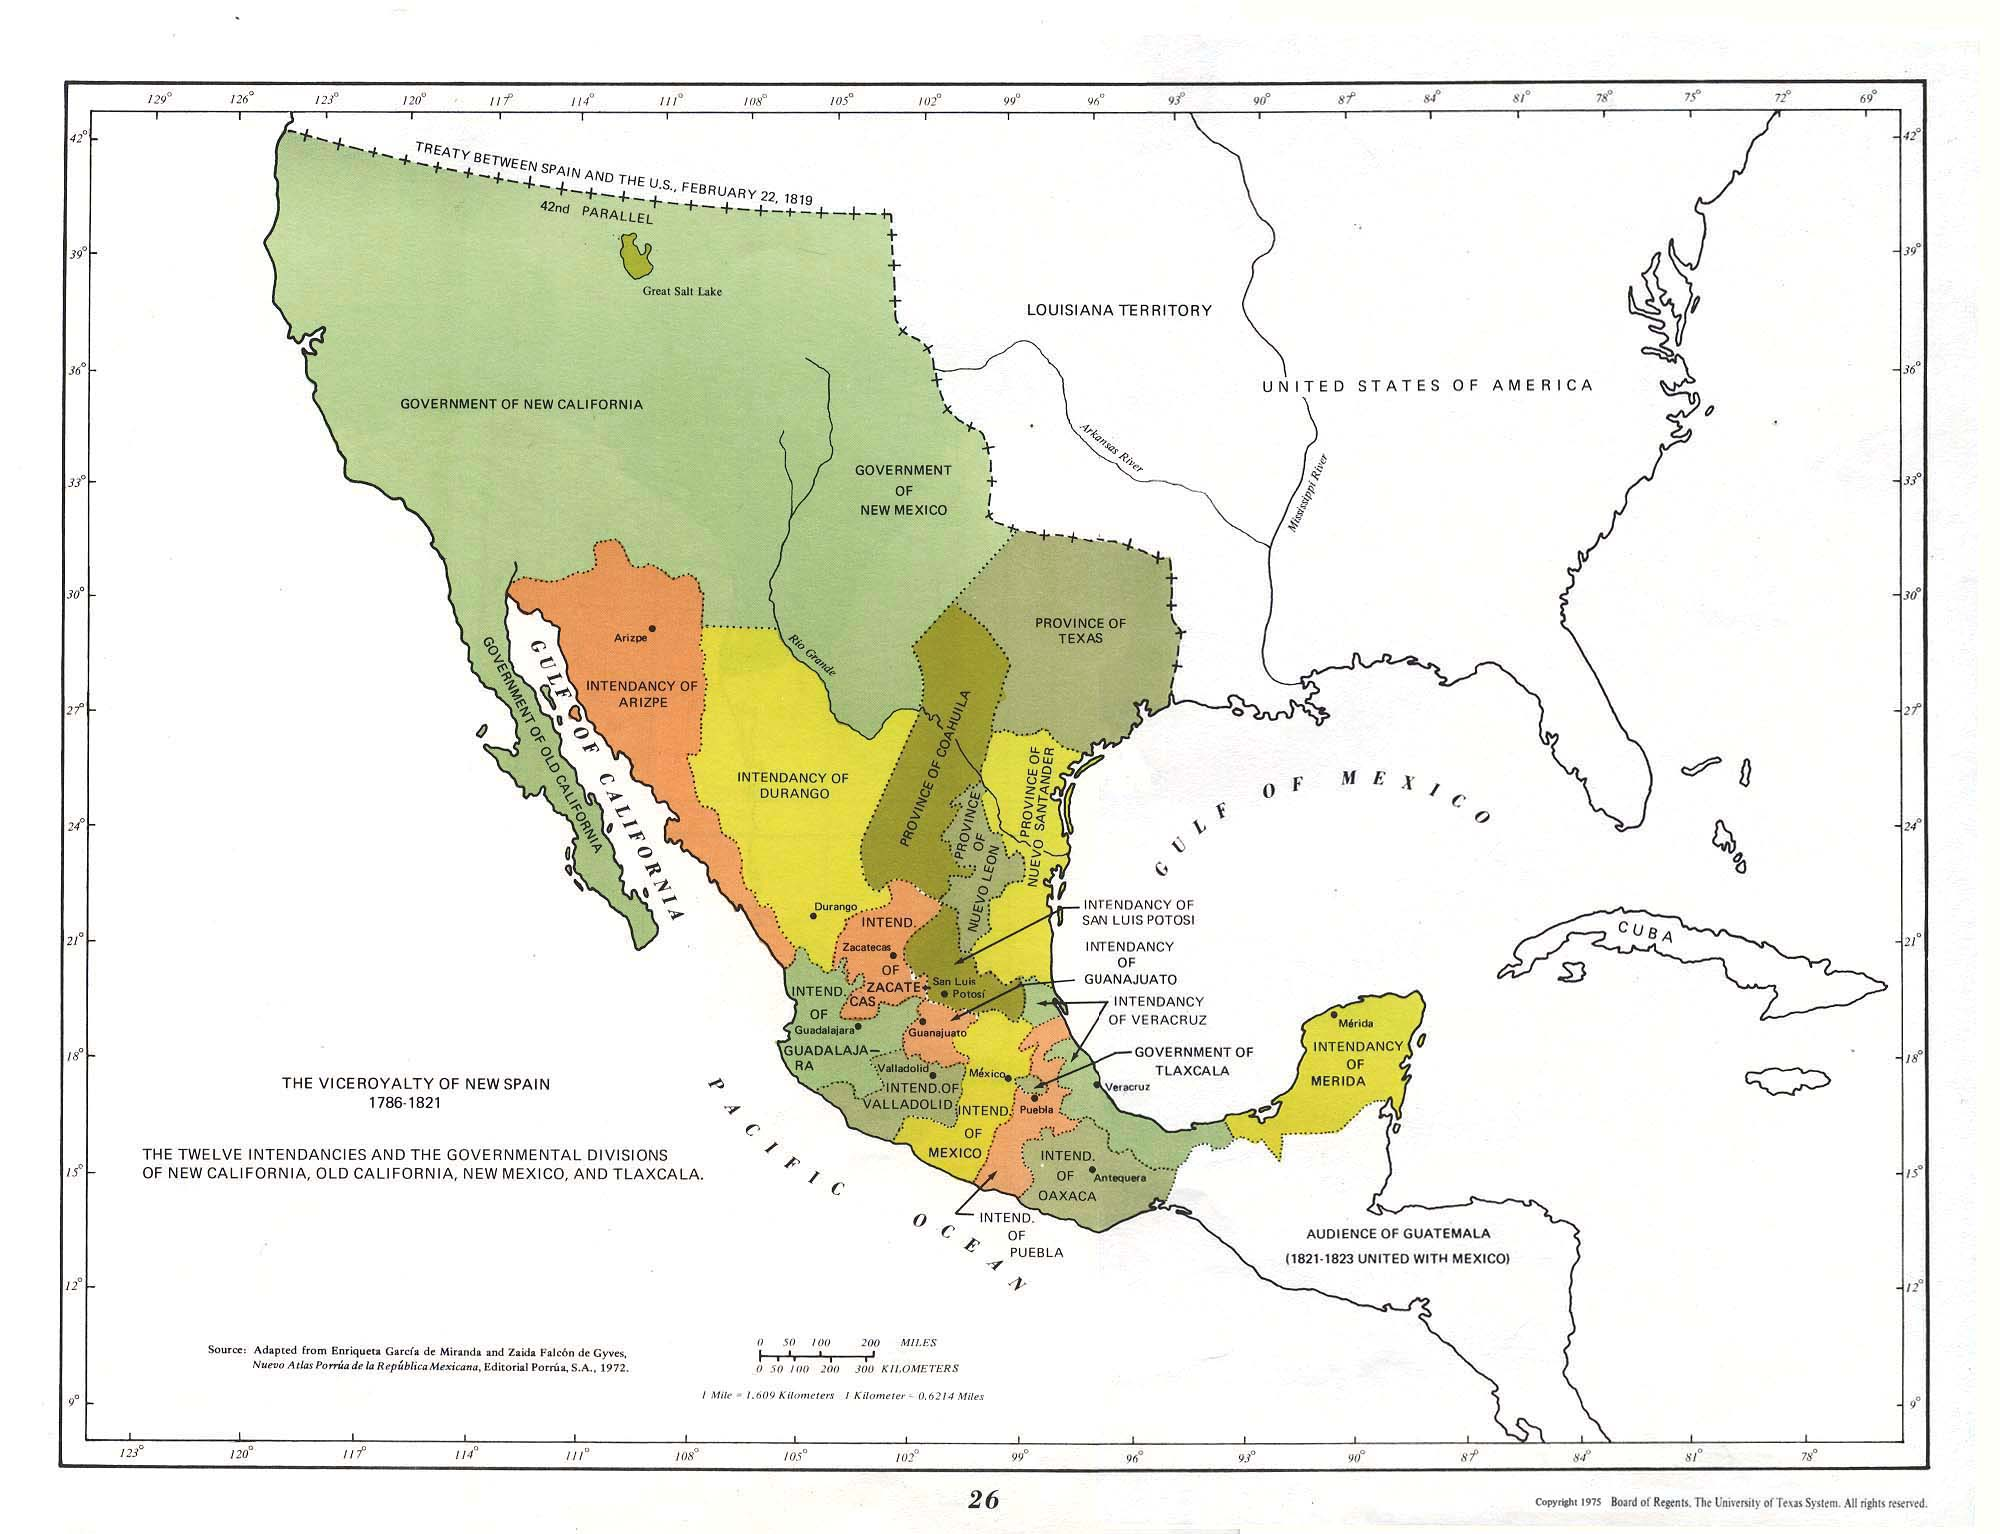 Map of The Viceroyalty of New Spain, Now Mexico 1786 - 1821